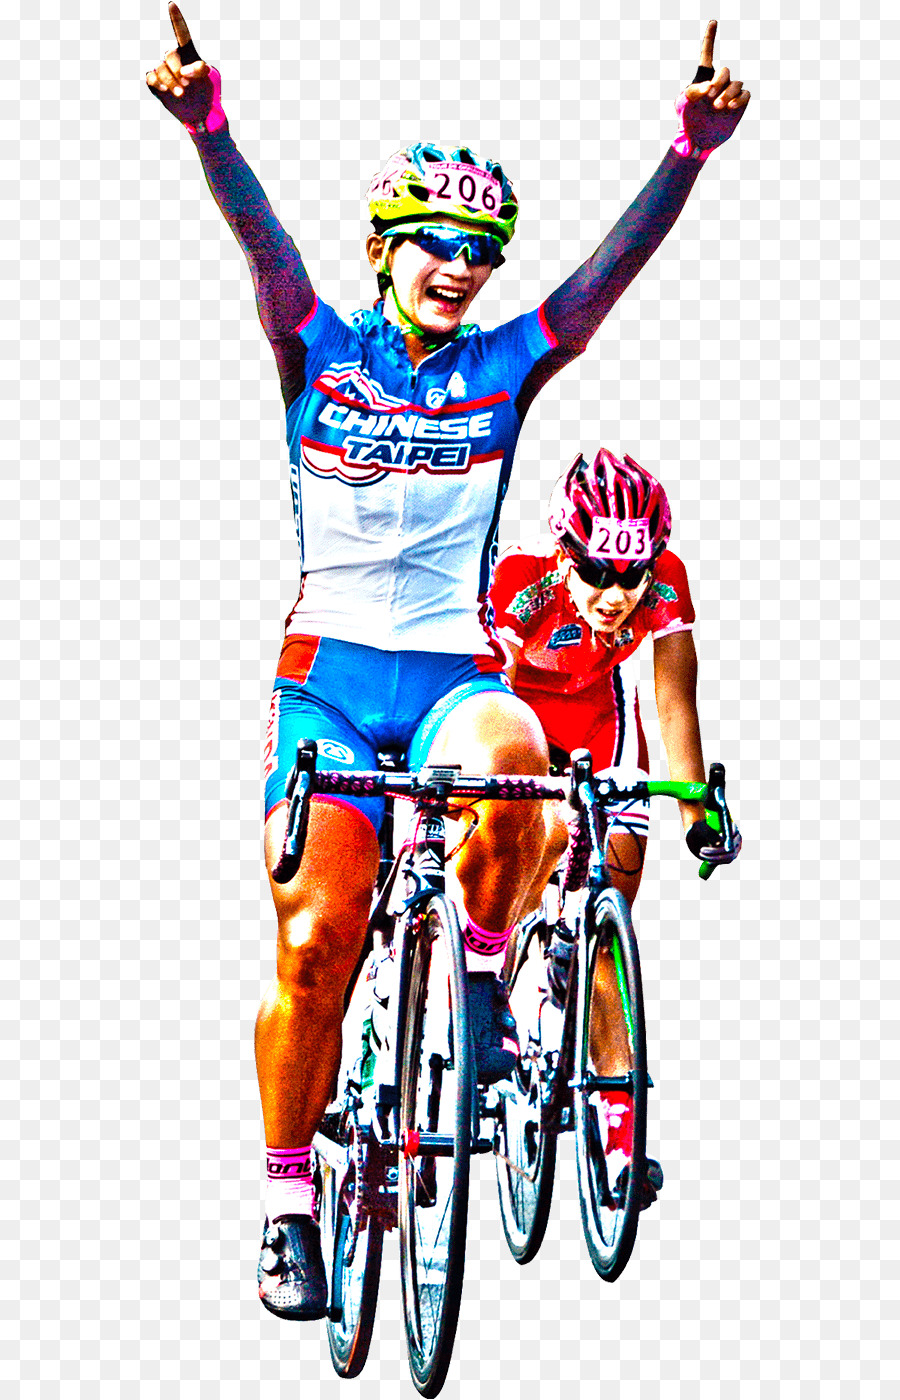 Clipart bicycle bicycle racer. Outdoor frame cycling racing